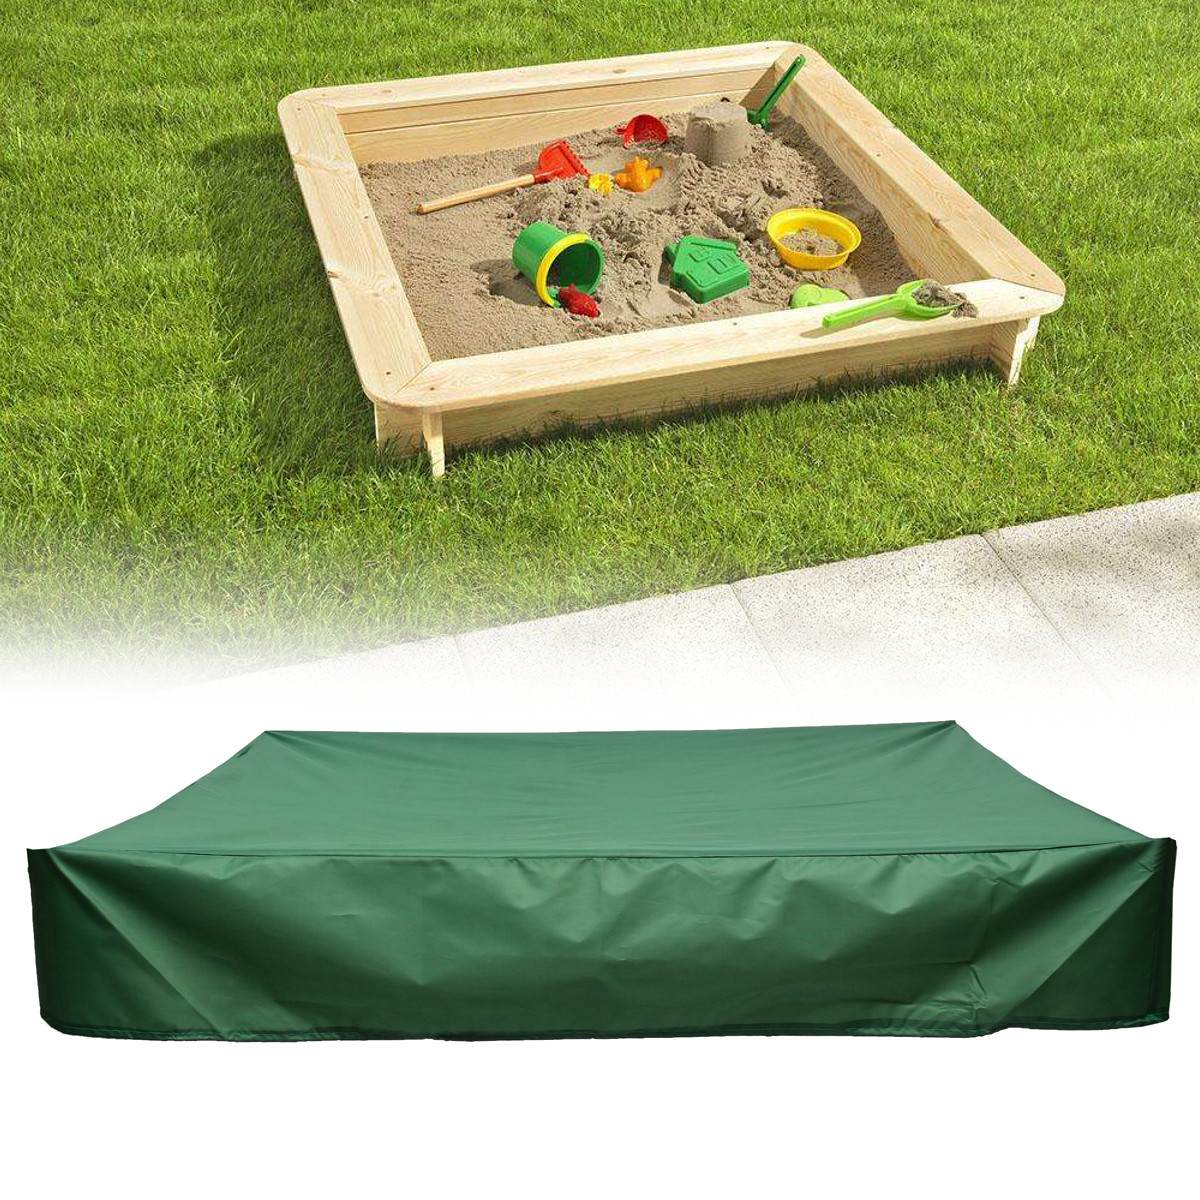 All-purpose Covers Home & Garden Hearty Waterproof Oxford Cloth Dust Cover Square Drawstring Sandbox Sandpit Dustproof Cover Canopy Shelter Green 120/150/180/200cm